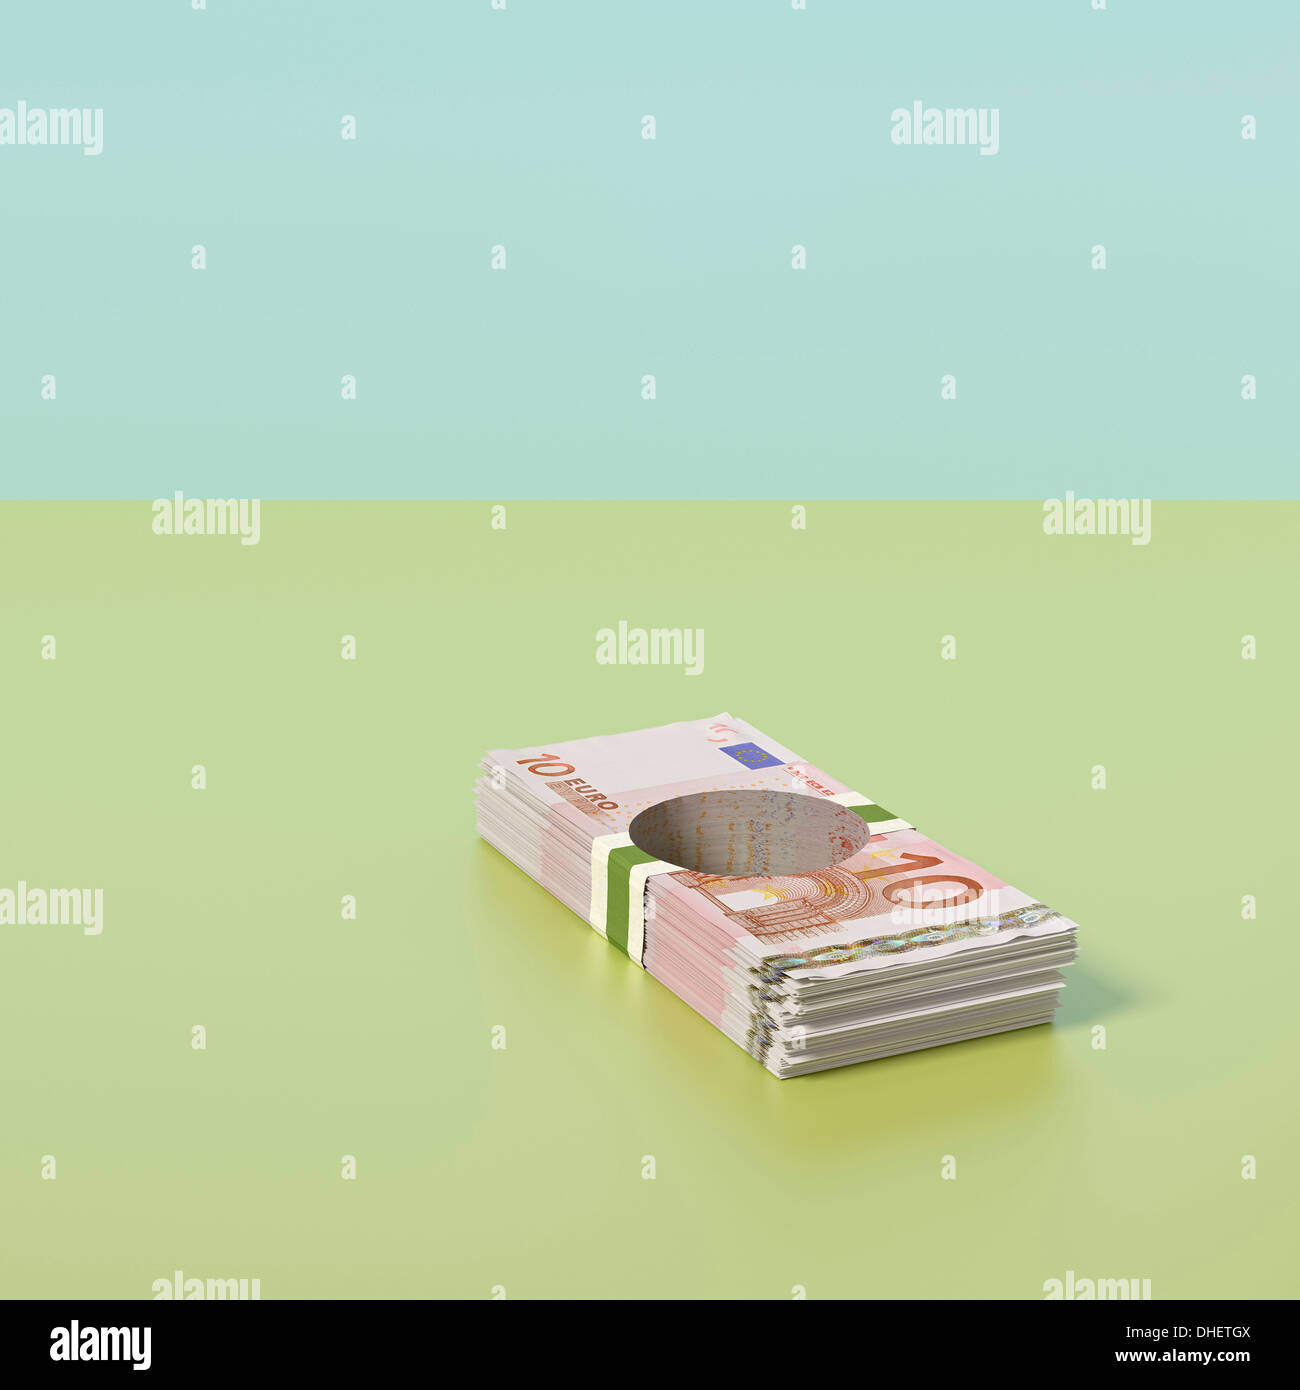 Pile of Euro notes with hole through the middle - Stock Image